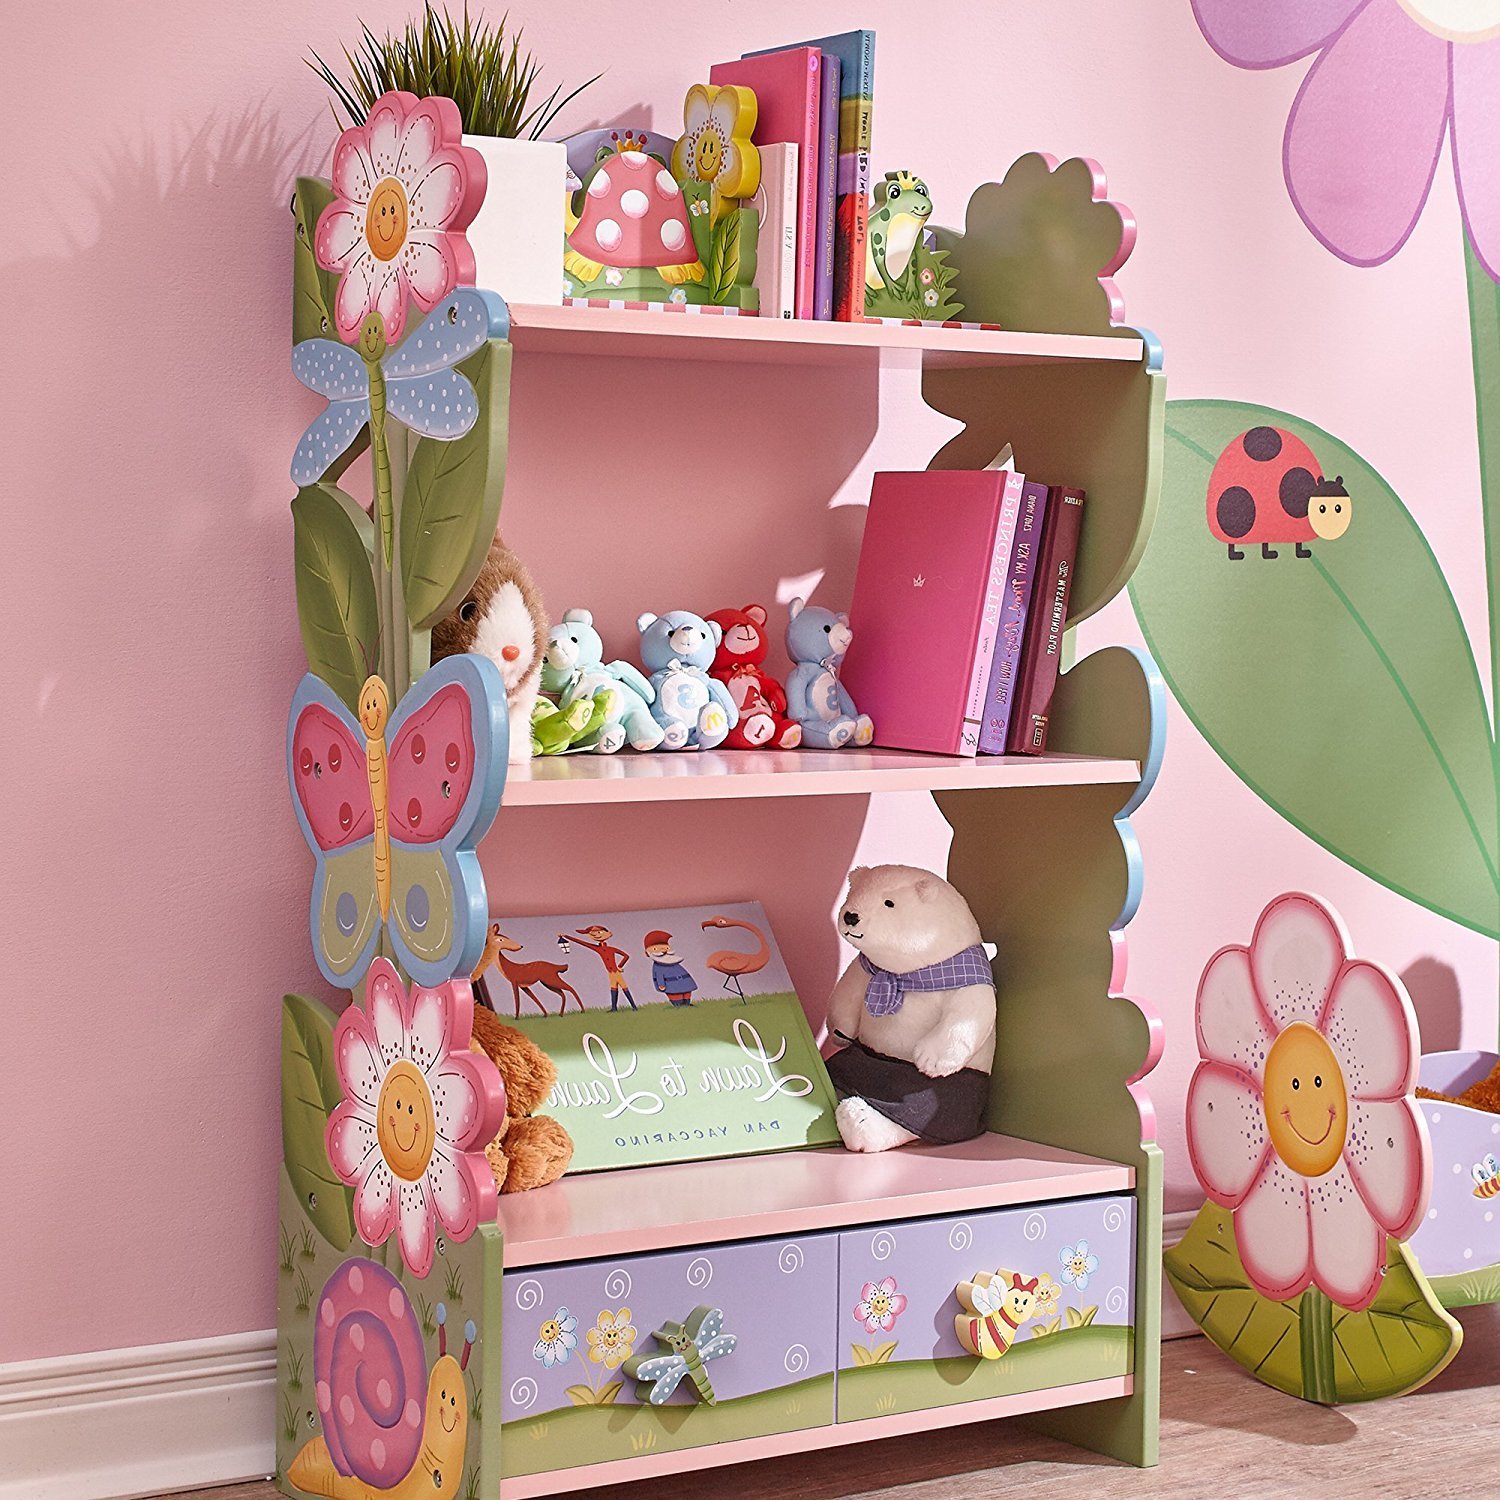 Fantasy Fields - Magic Garden Thematic Kids Wooden Bookcase with Storage | Imagination Inspiring Hand Crafted & Hand Painted Details Non-Toxic, Lead Free Water-based Paint Teamson Design W-7500A